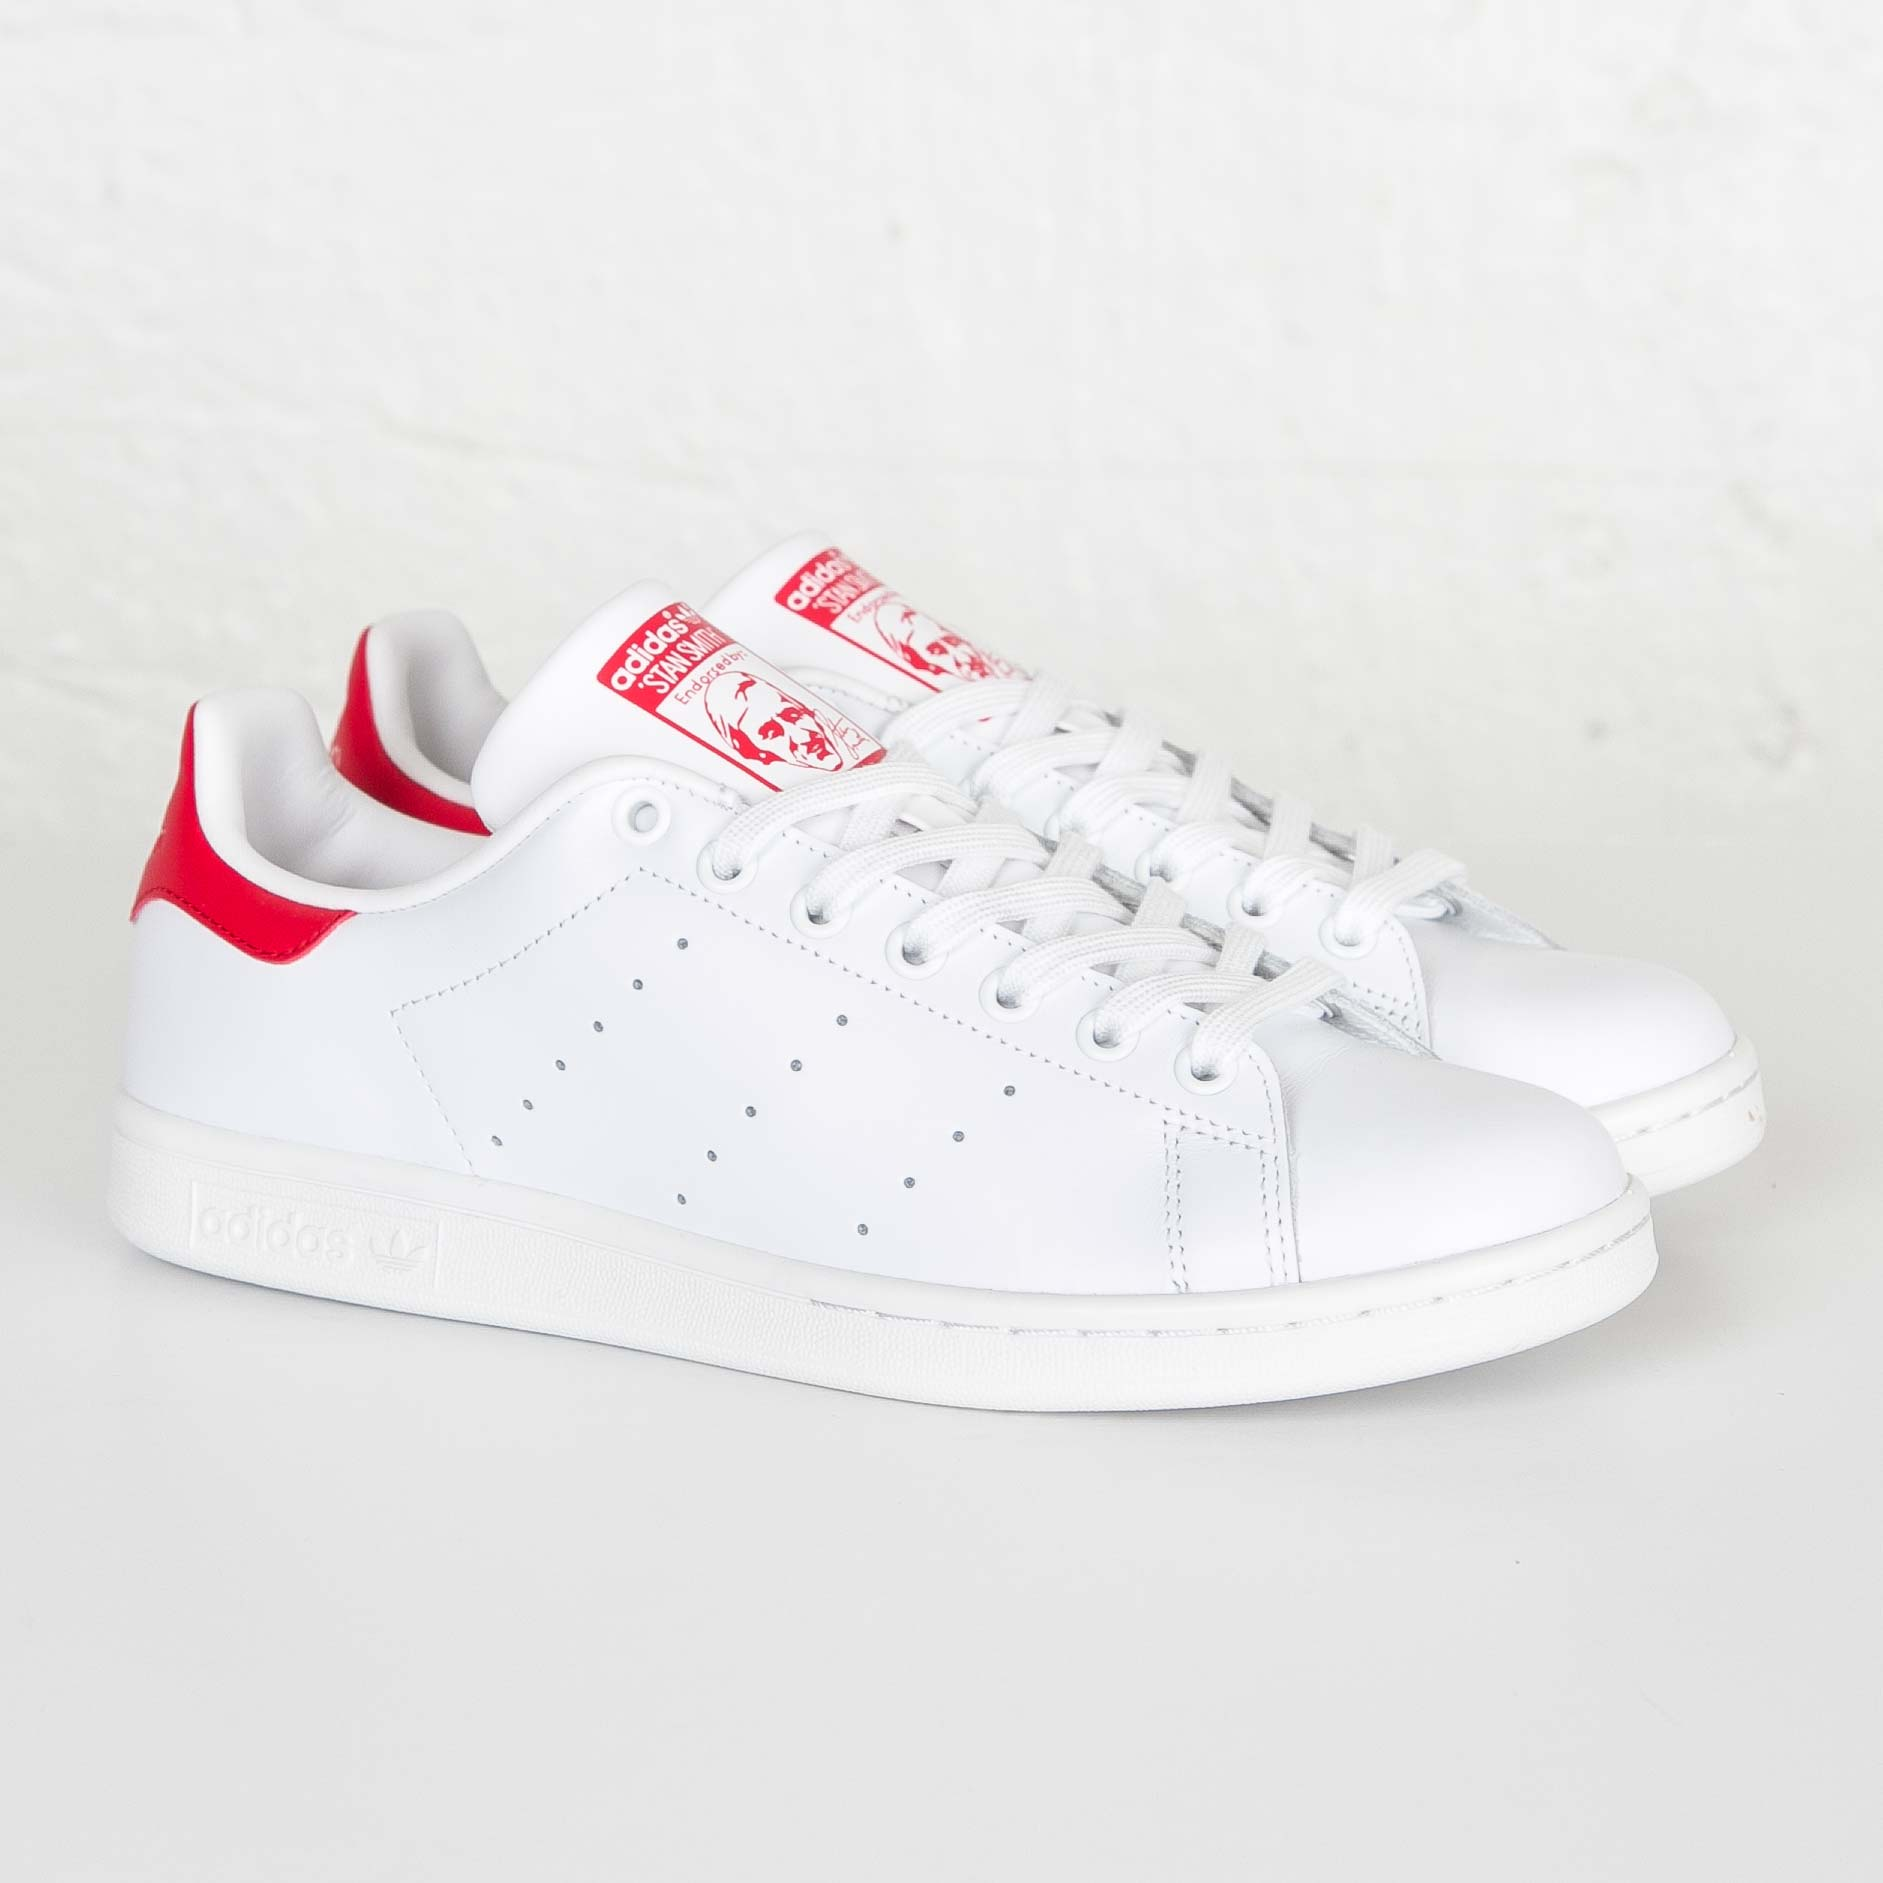 adidas Stan Smith M20326 Sneakersnstuff | sneakers